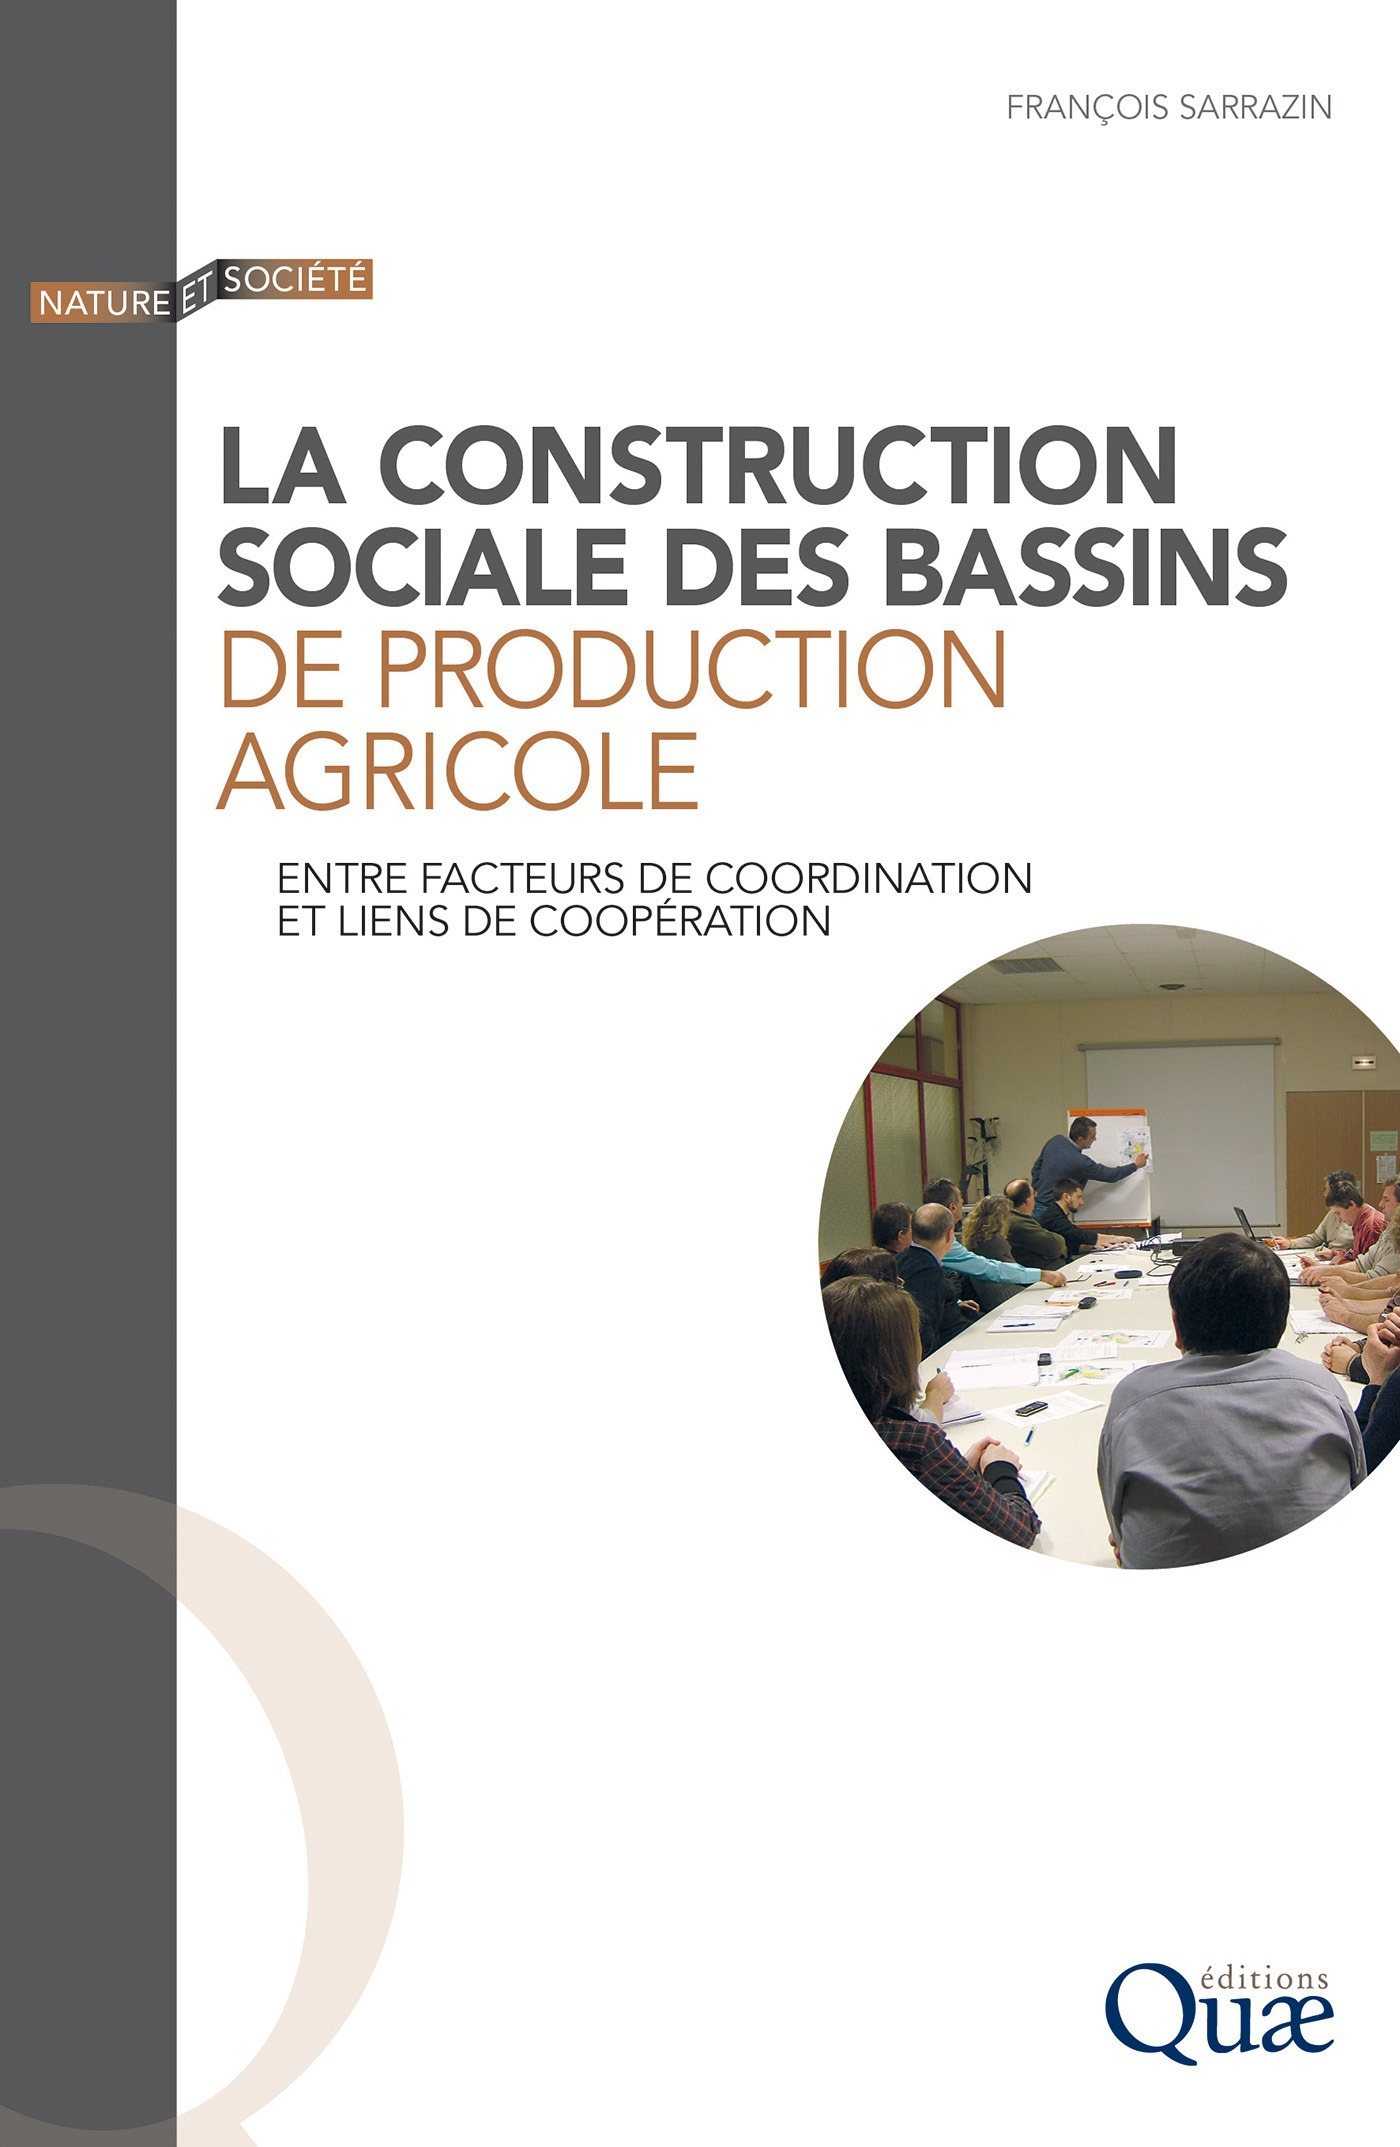 François Sarrazin La construction sociale des bassins de production agricole